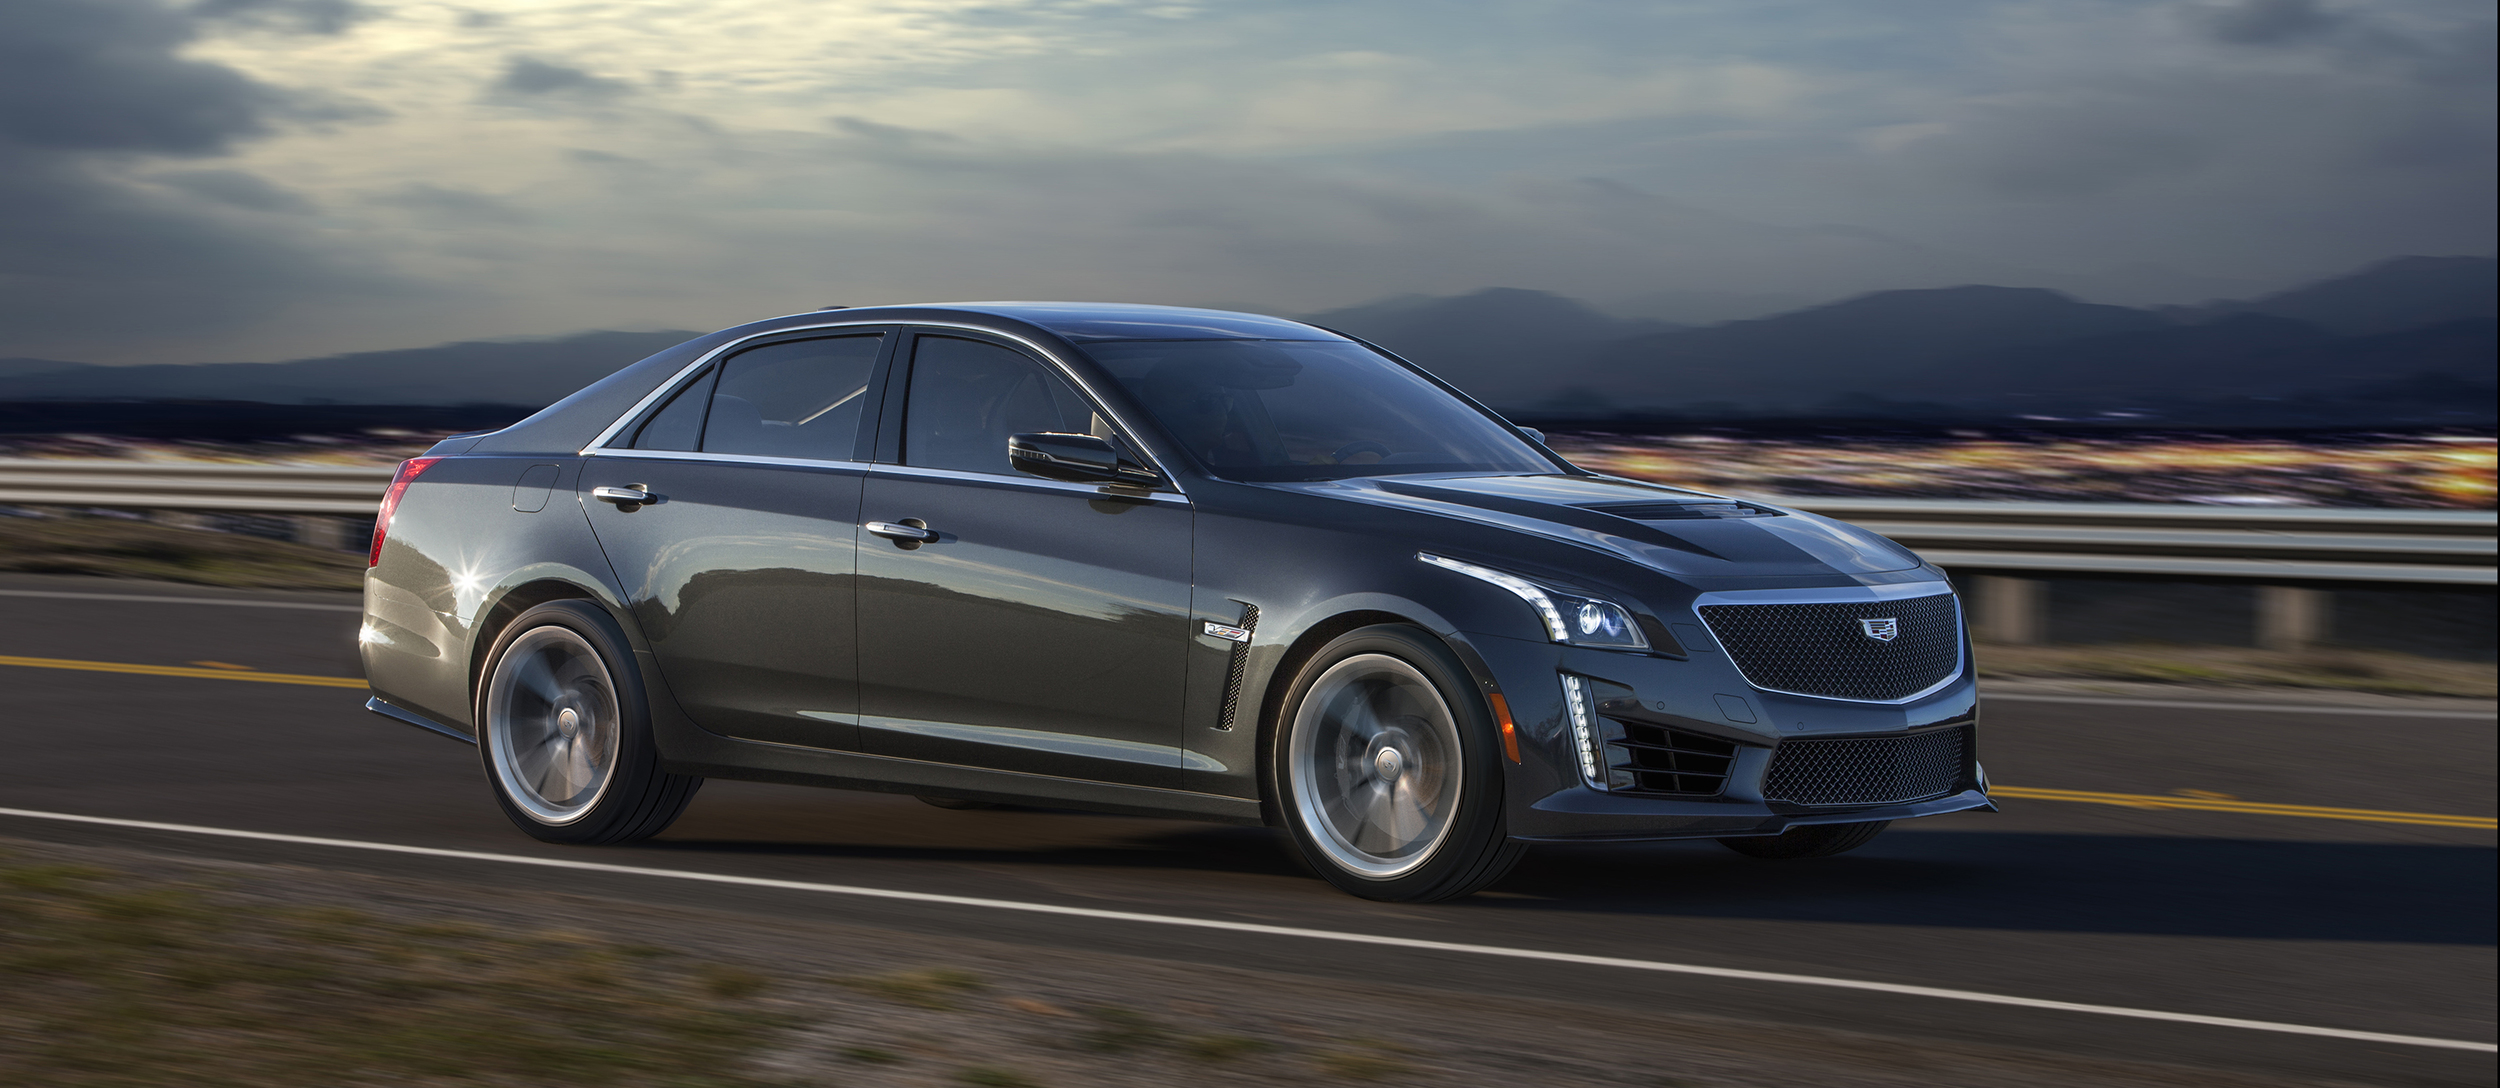 2016 cadillac cts v photo gallery autoblog. Black Bedroom Furniture Sets. Home Design Ideas